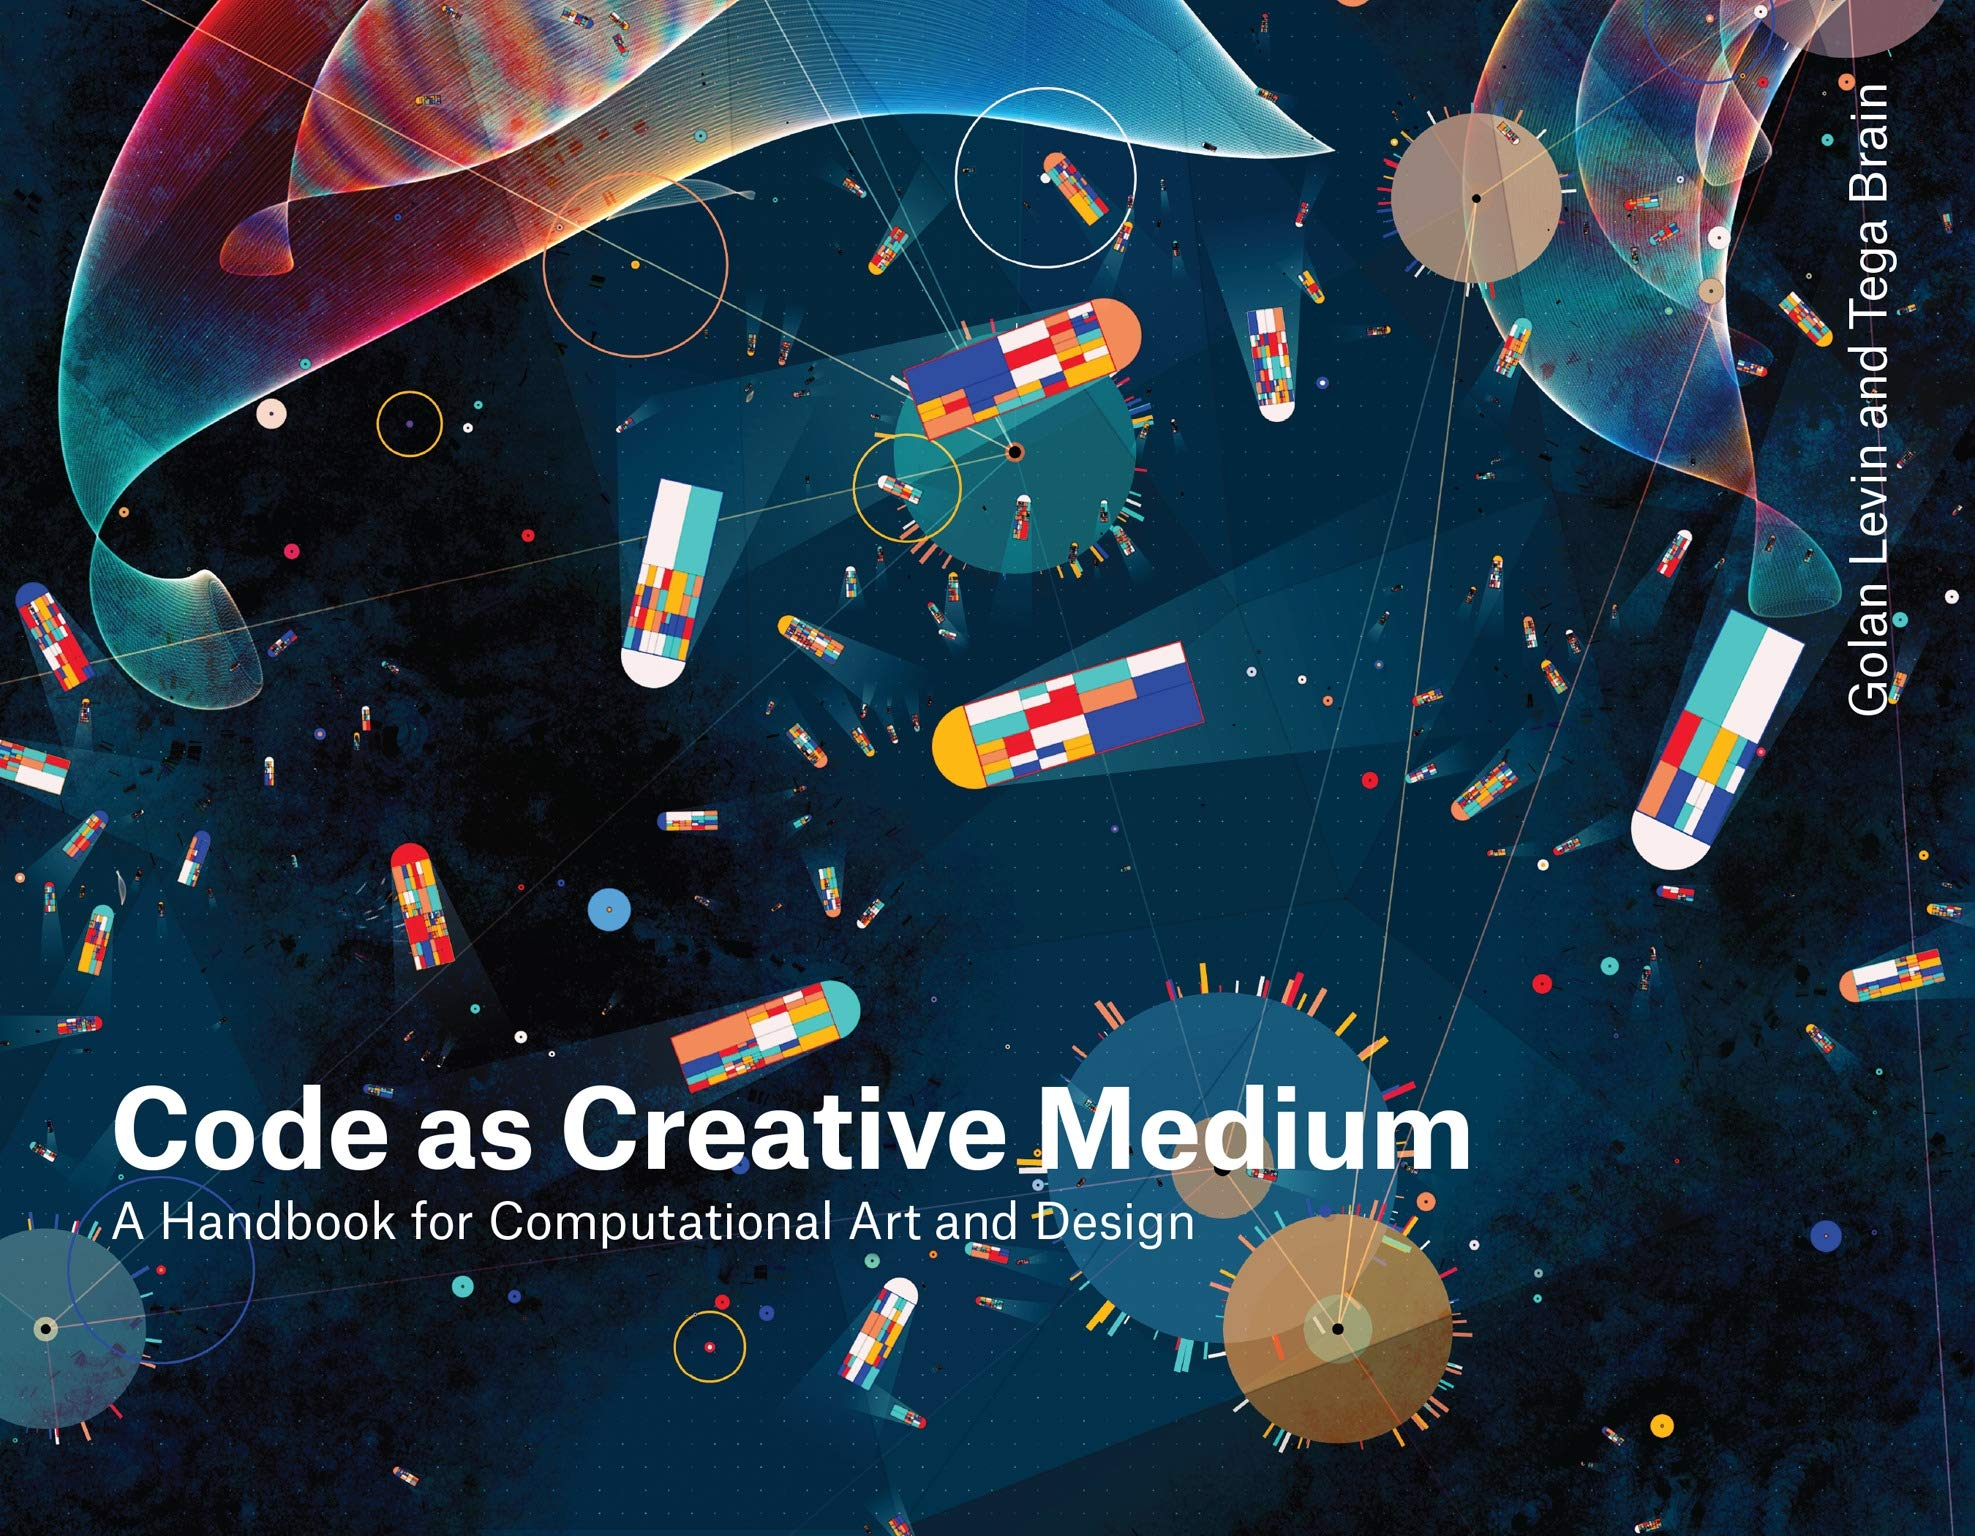 The cover of Code as Creative Medium, featuring an abstract illustration of shapes in a field of color.